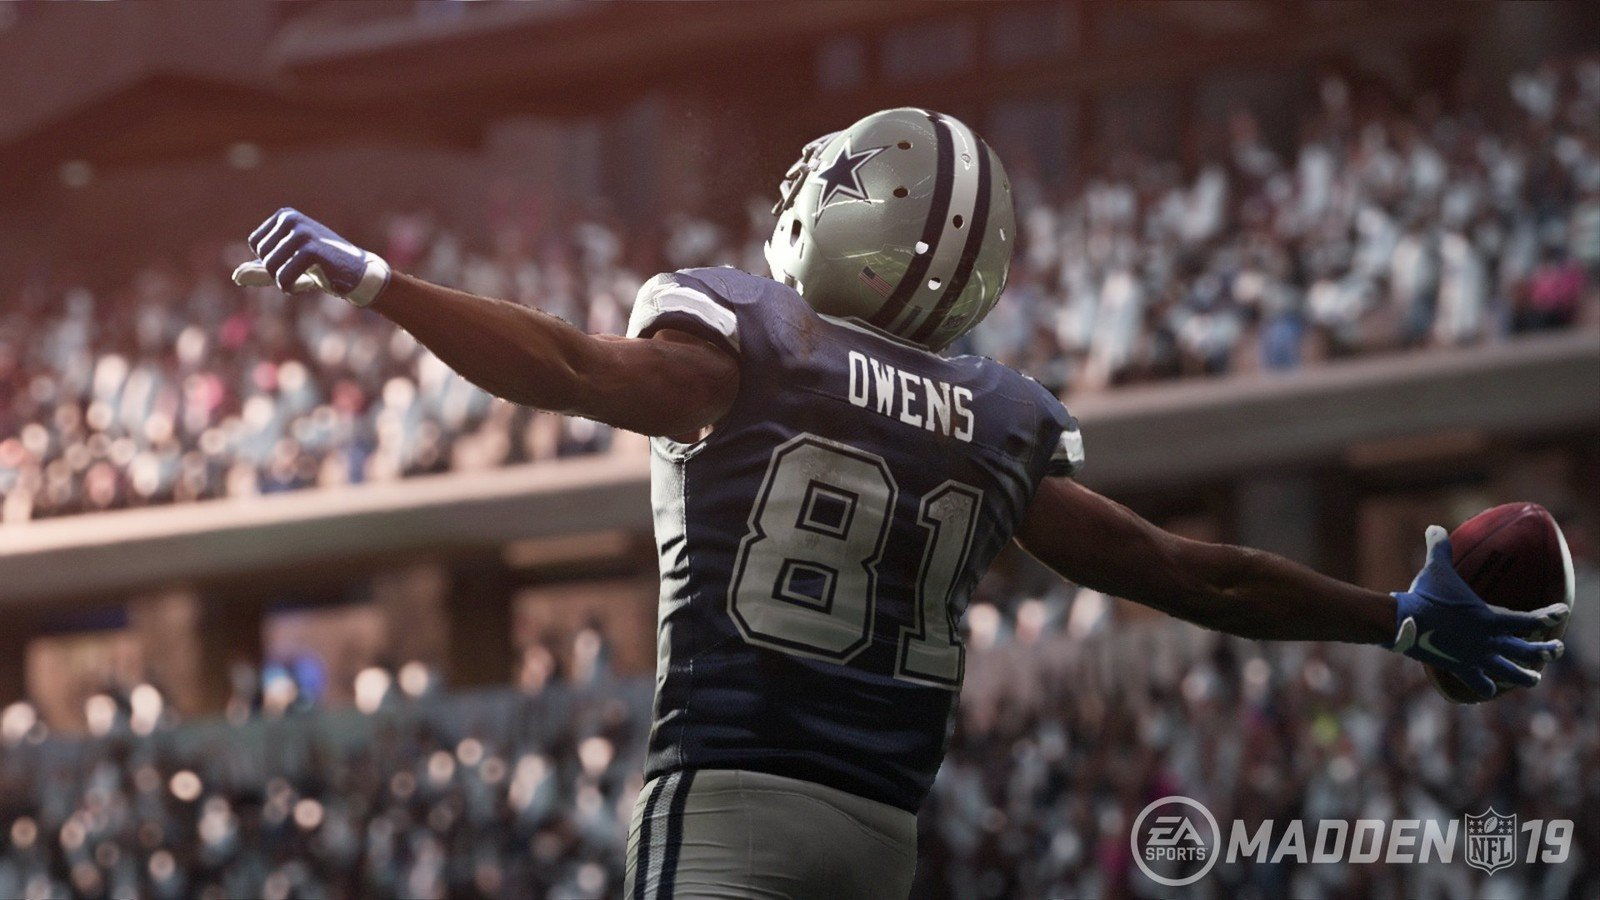 Knock me over with a feather, there's gonna be a new Madden game this year screenshot